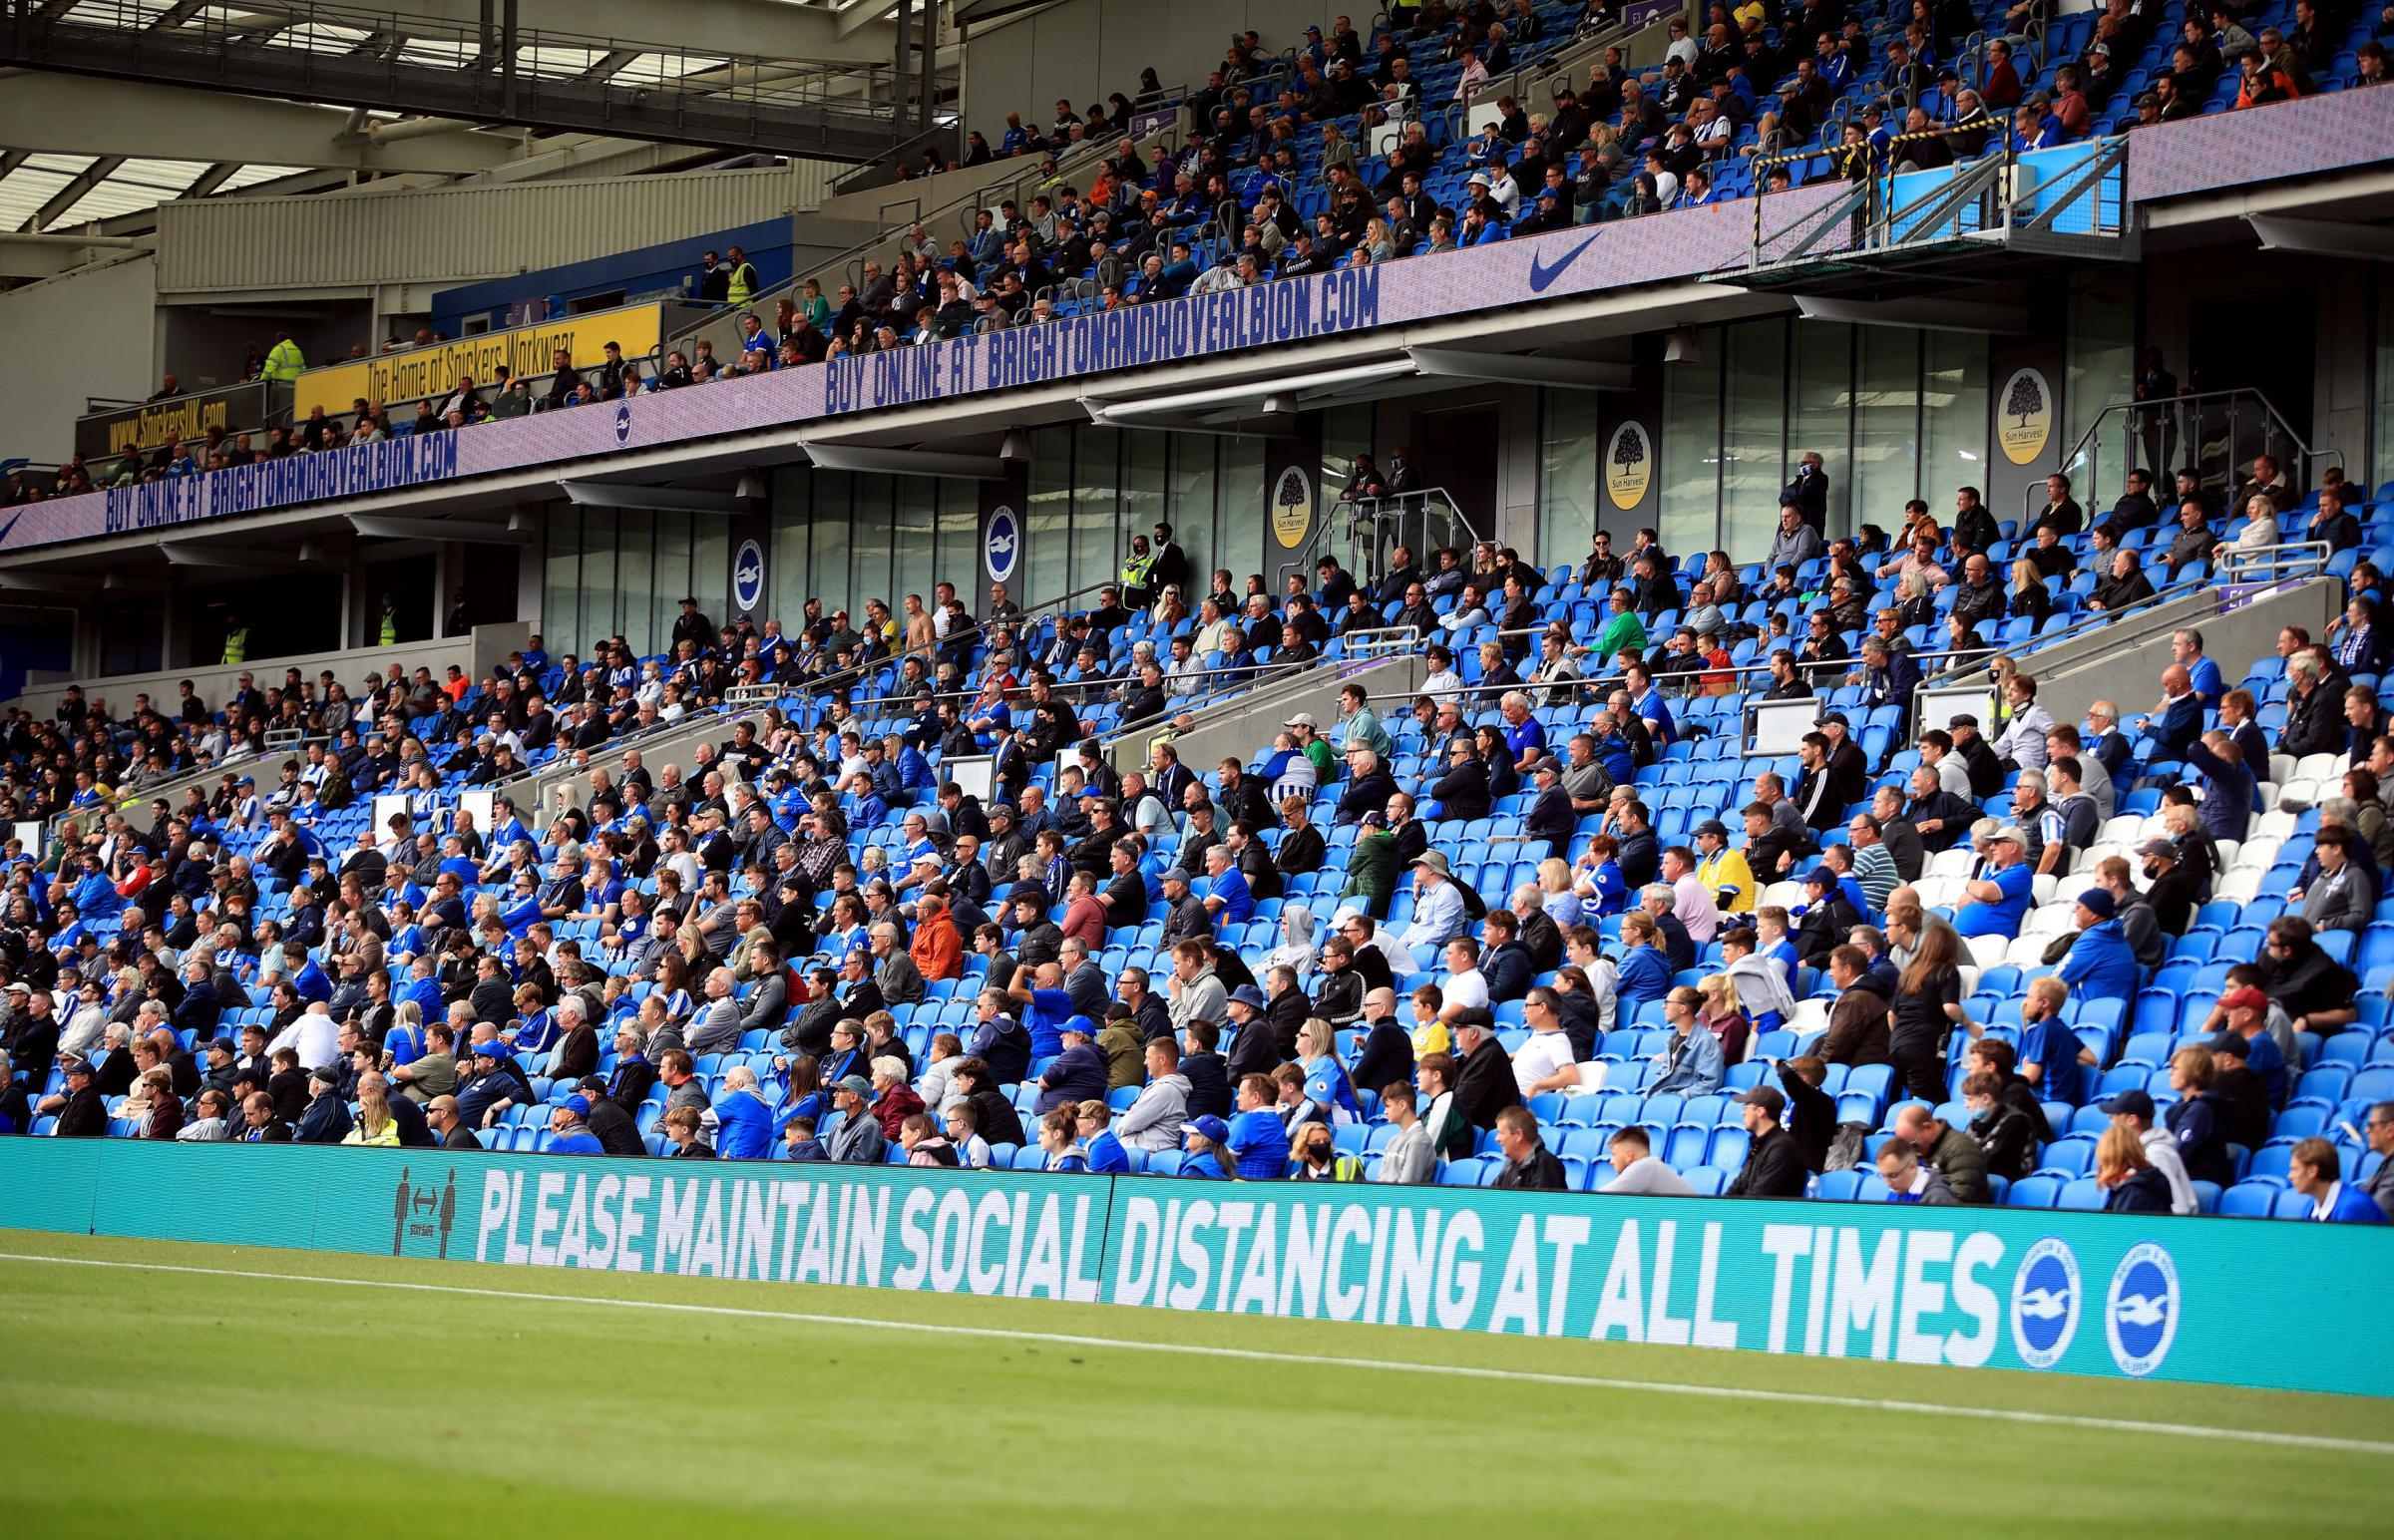 Albion fans will have to wait for a return to football stadiums